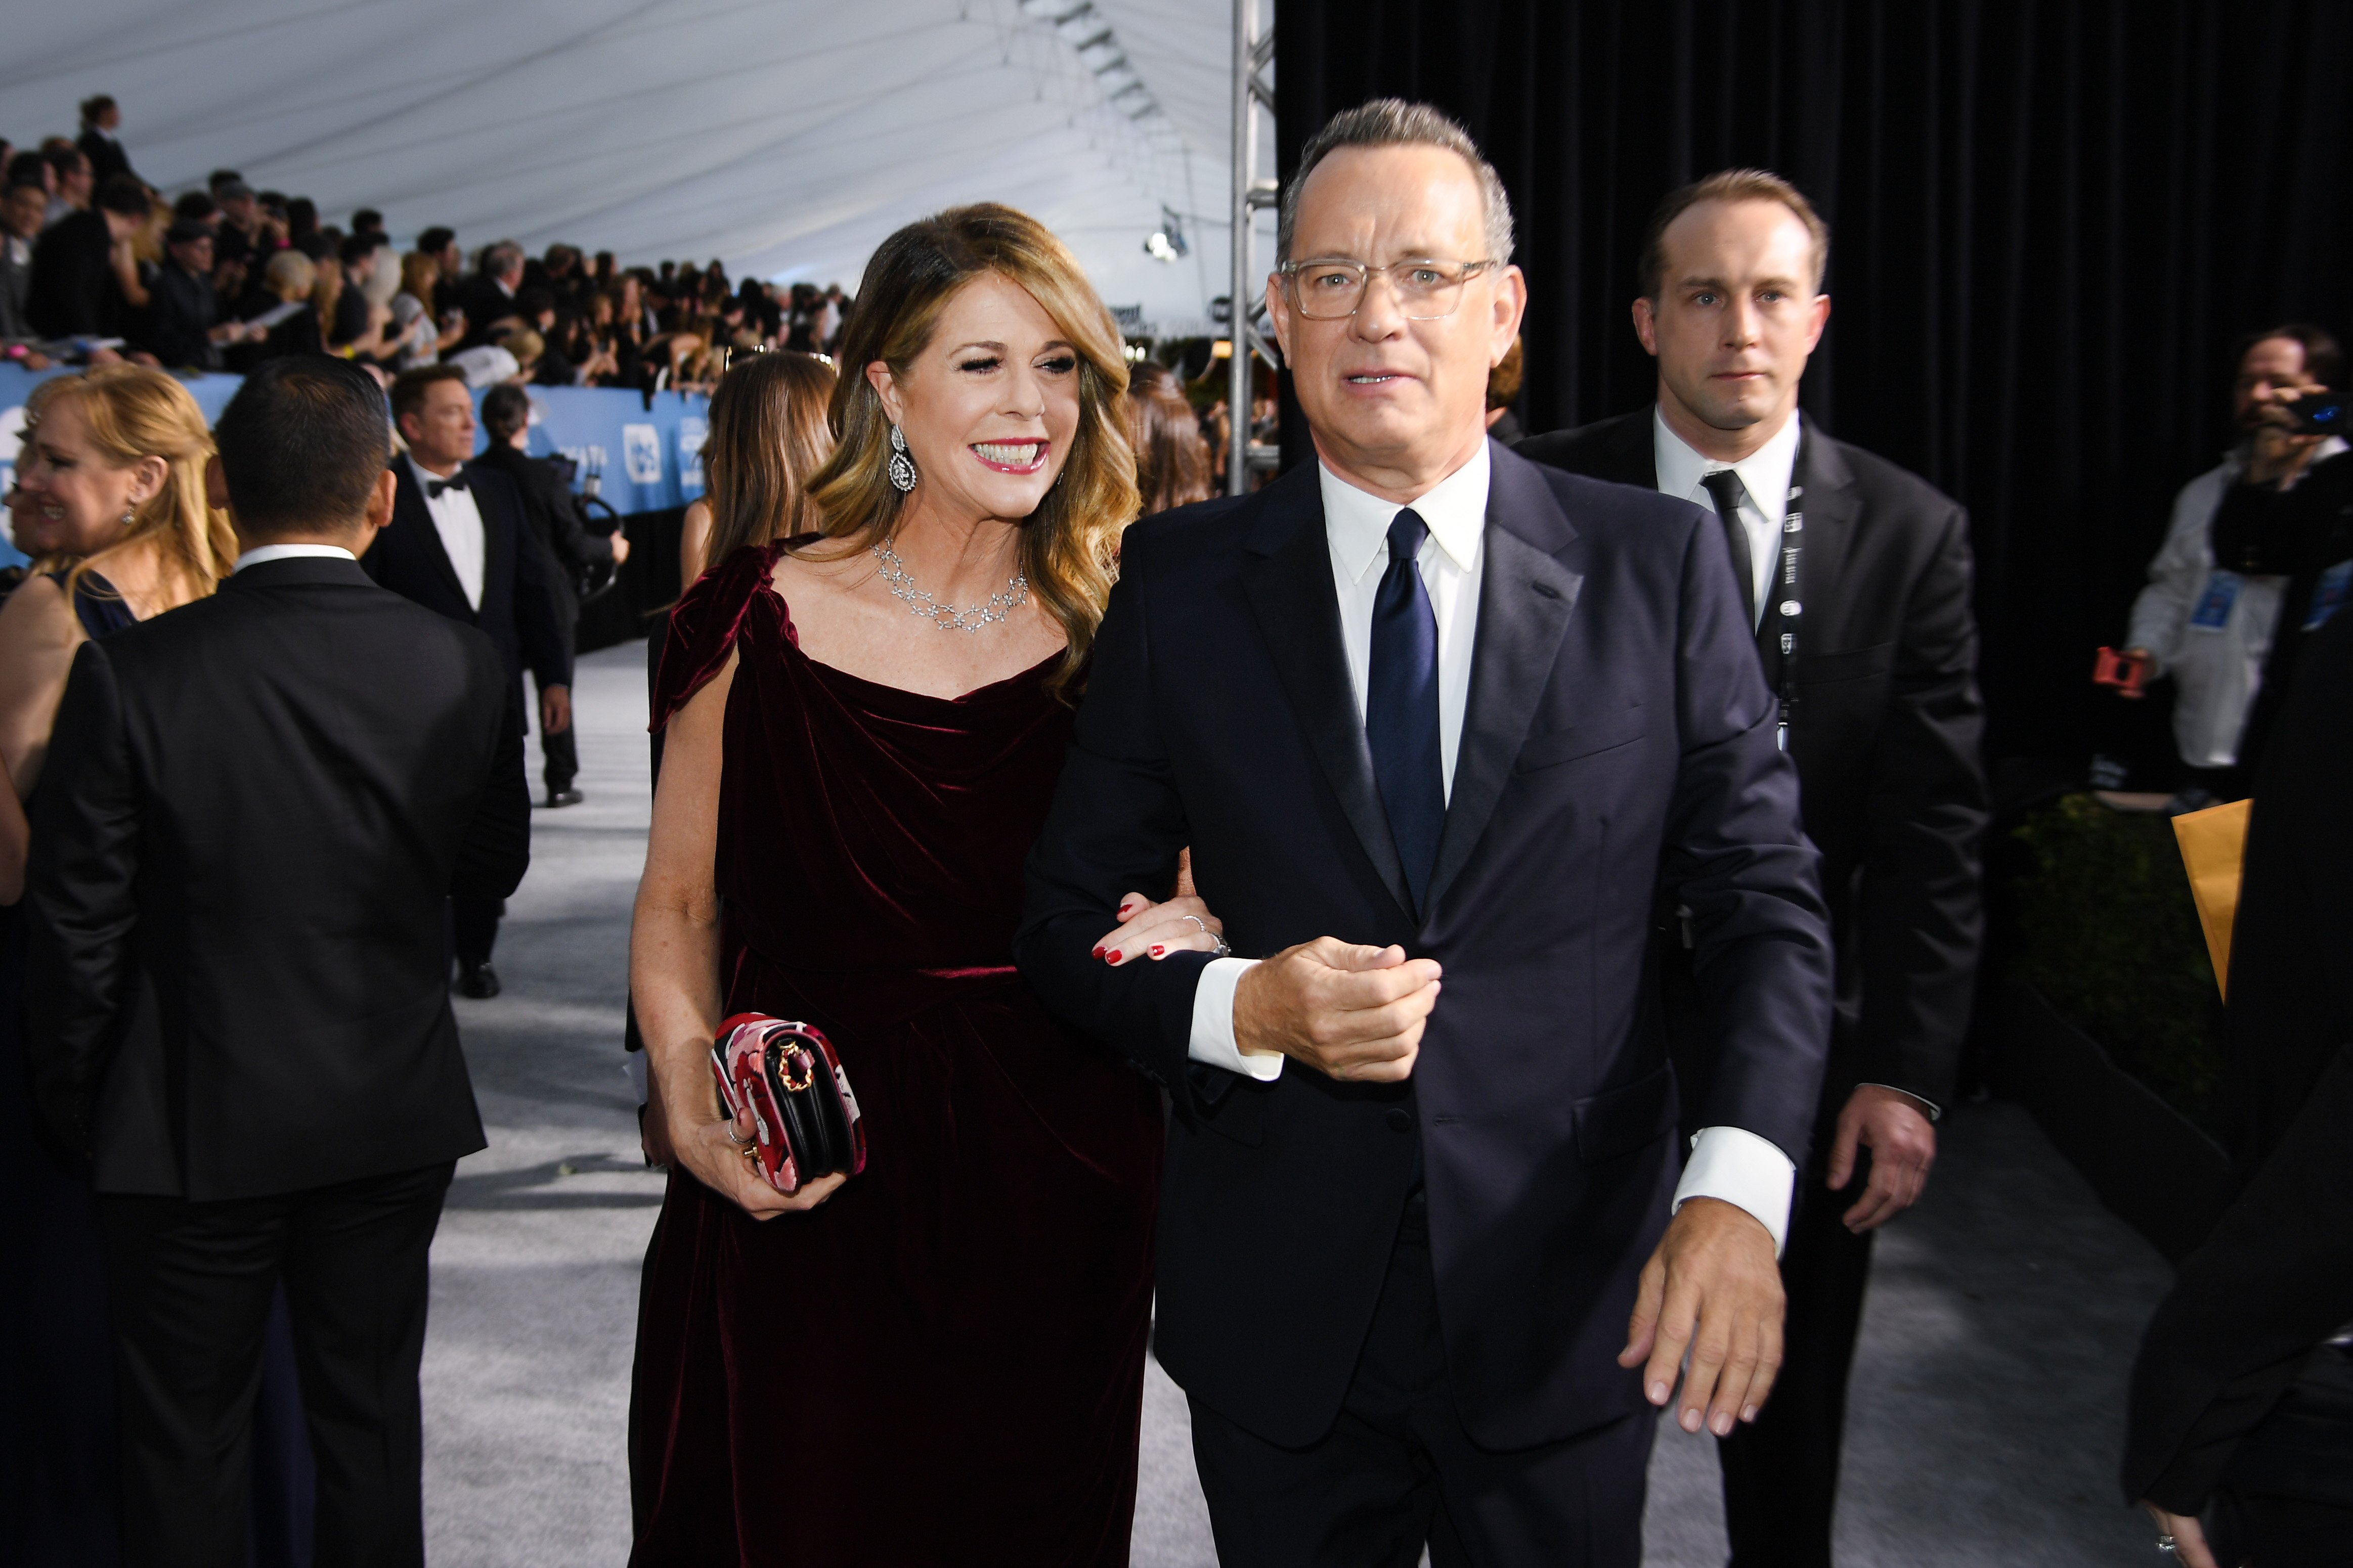 Rita Wilson and Tom Hanks attend the 26th Annual Screen Actors Guild Awards at The Shrine Auditorium on January 19, 2020 in Los Angeles, California | Photo: GettyImages